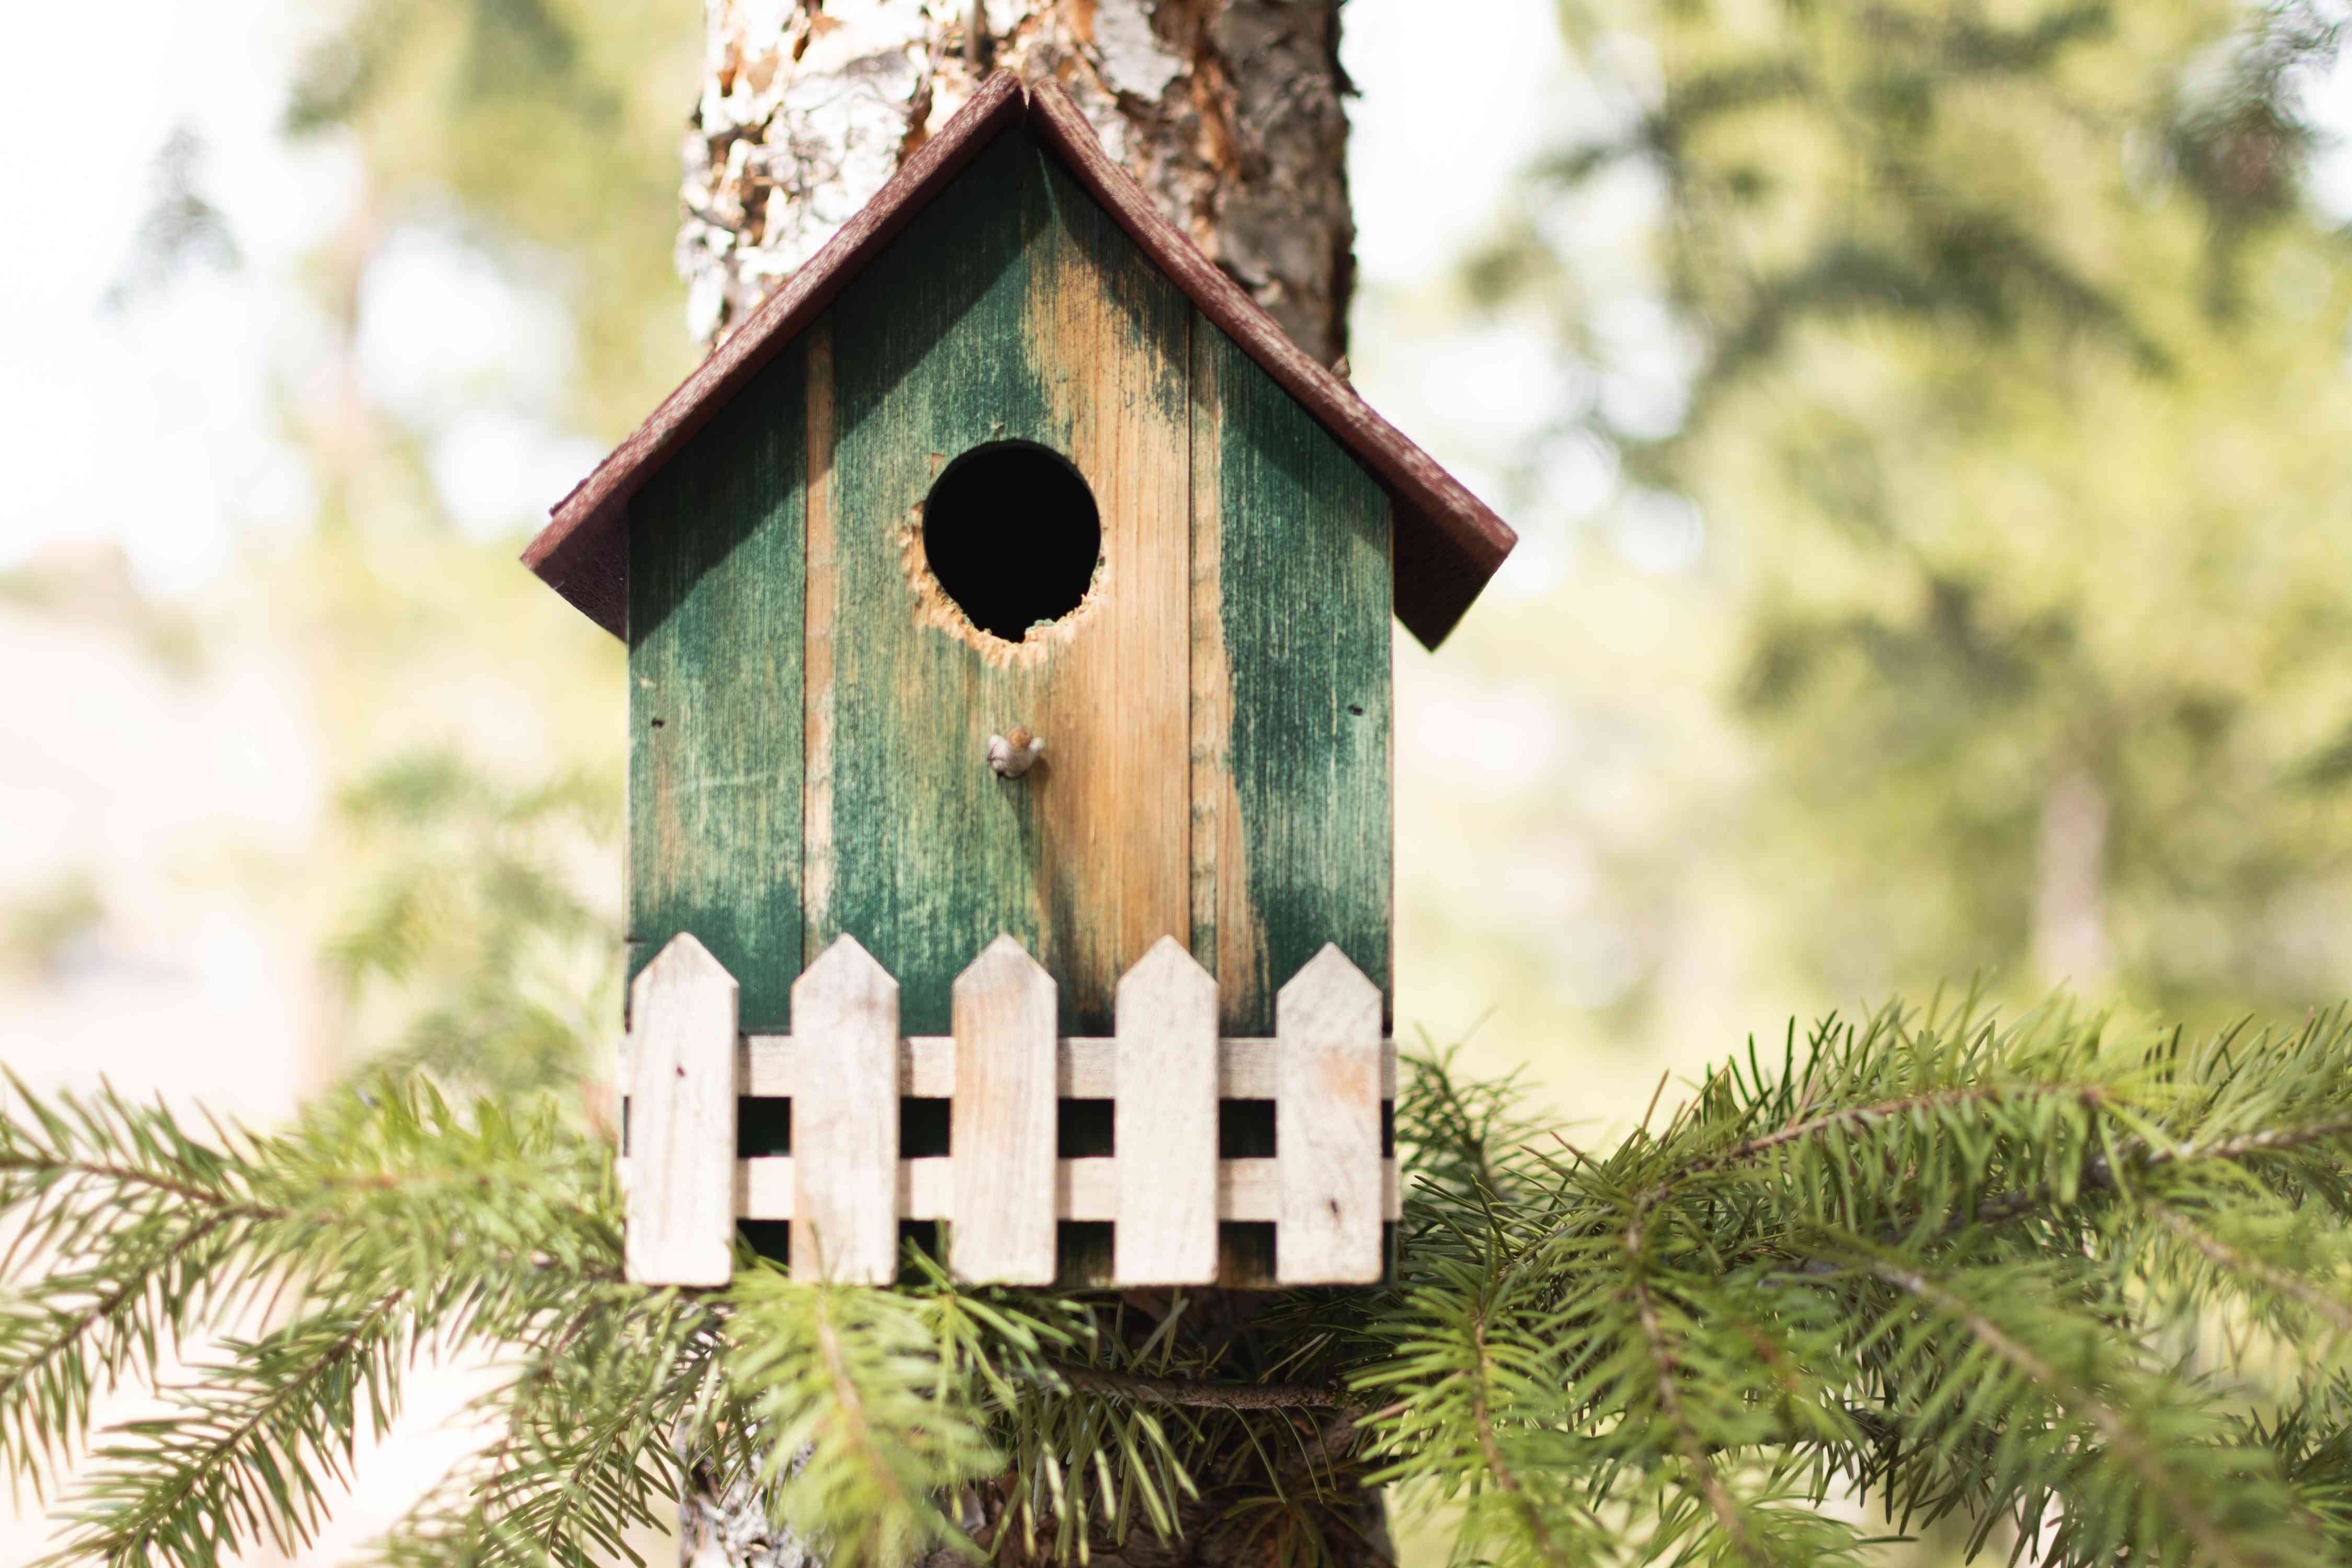 Wooden green birdhouse secured on pine tree with branches underneath